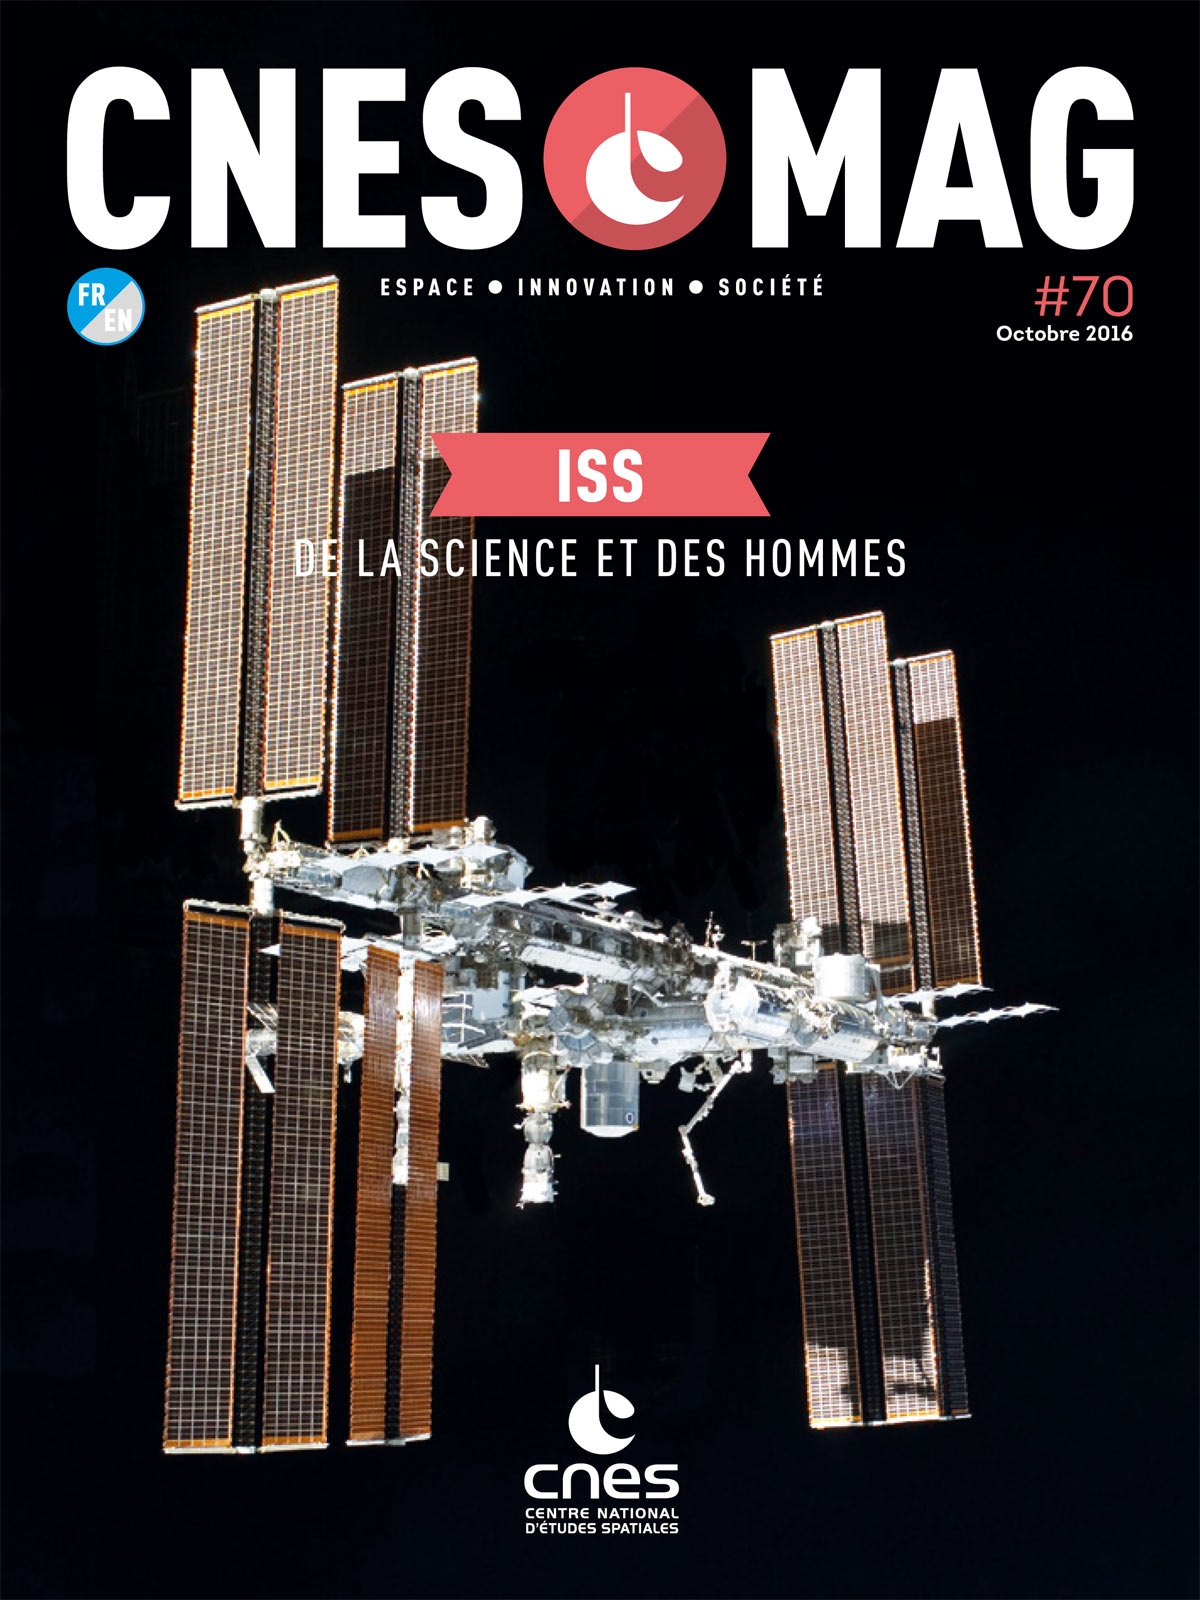 is_cnesmag70_couv_fr.jpg